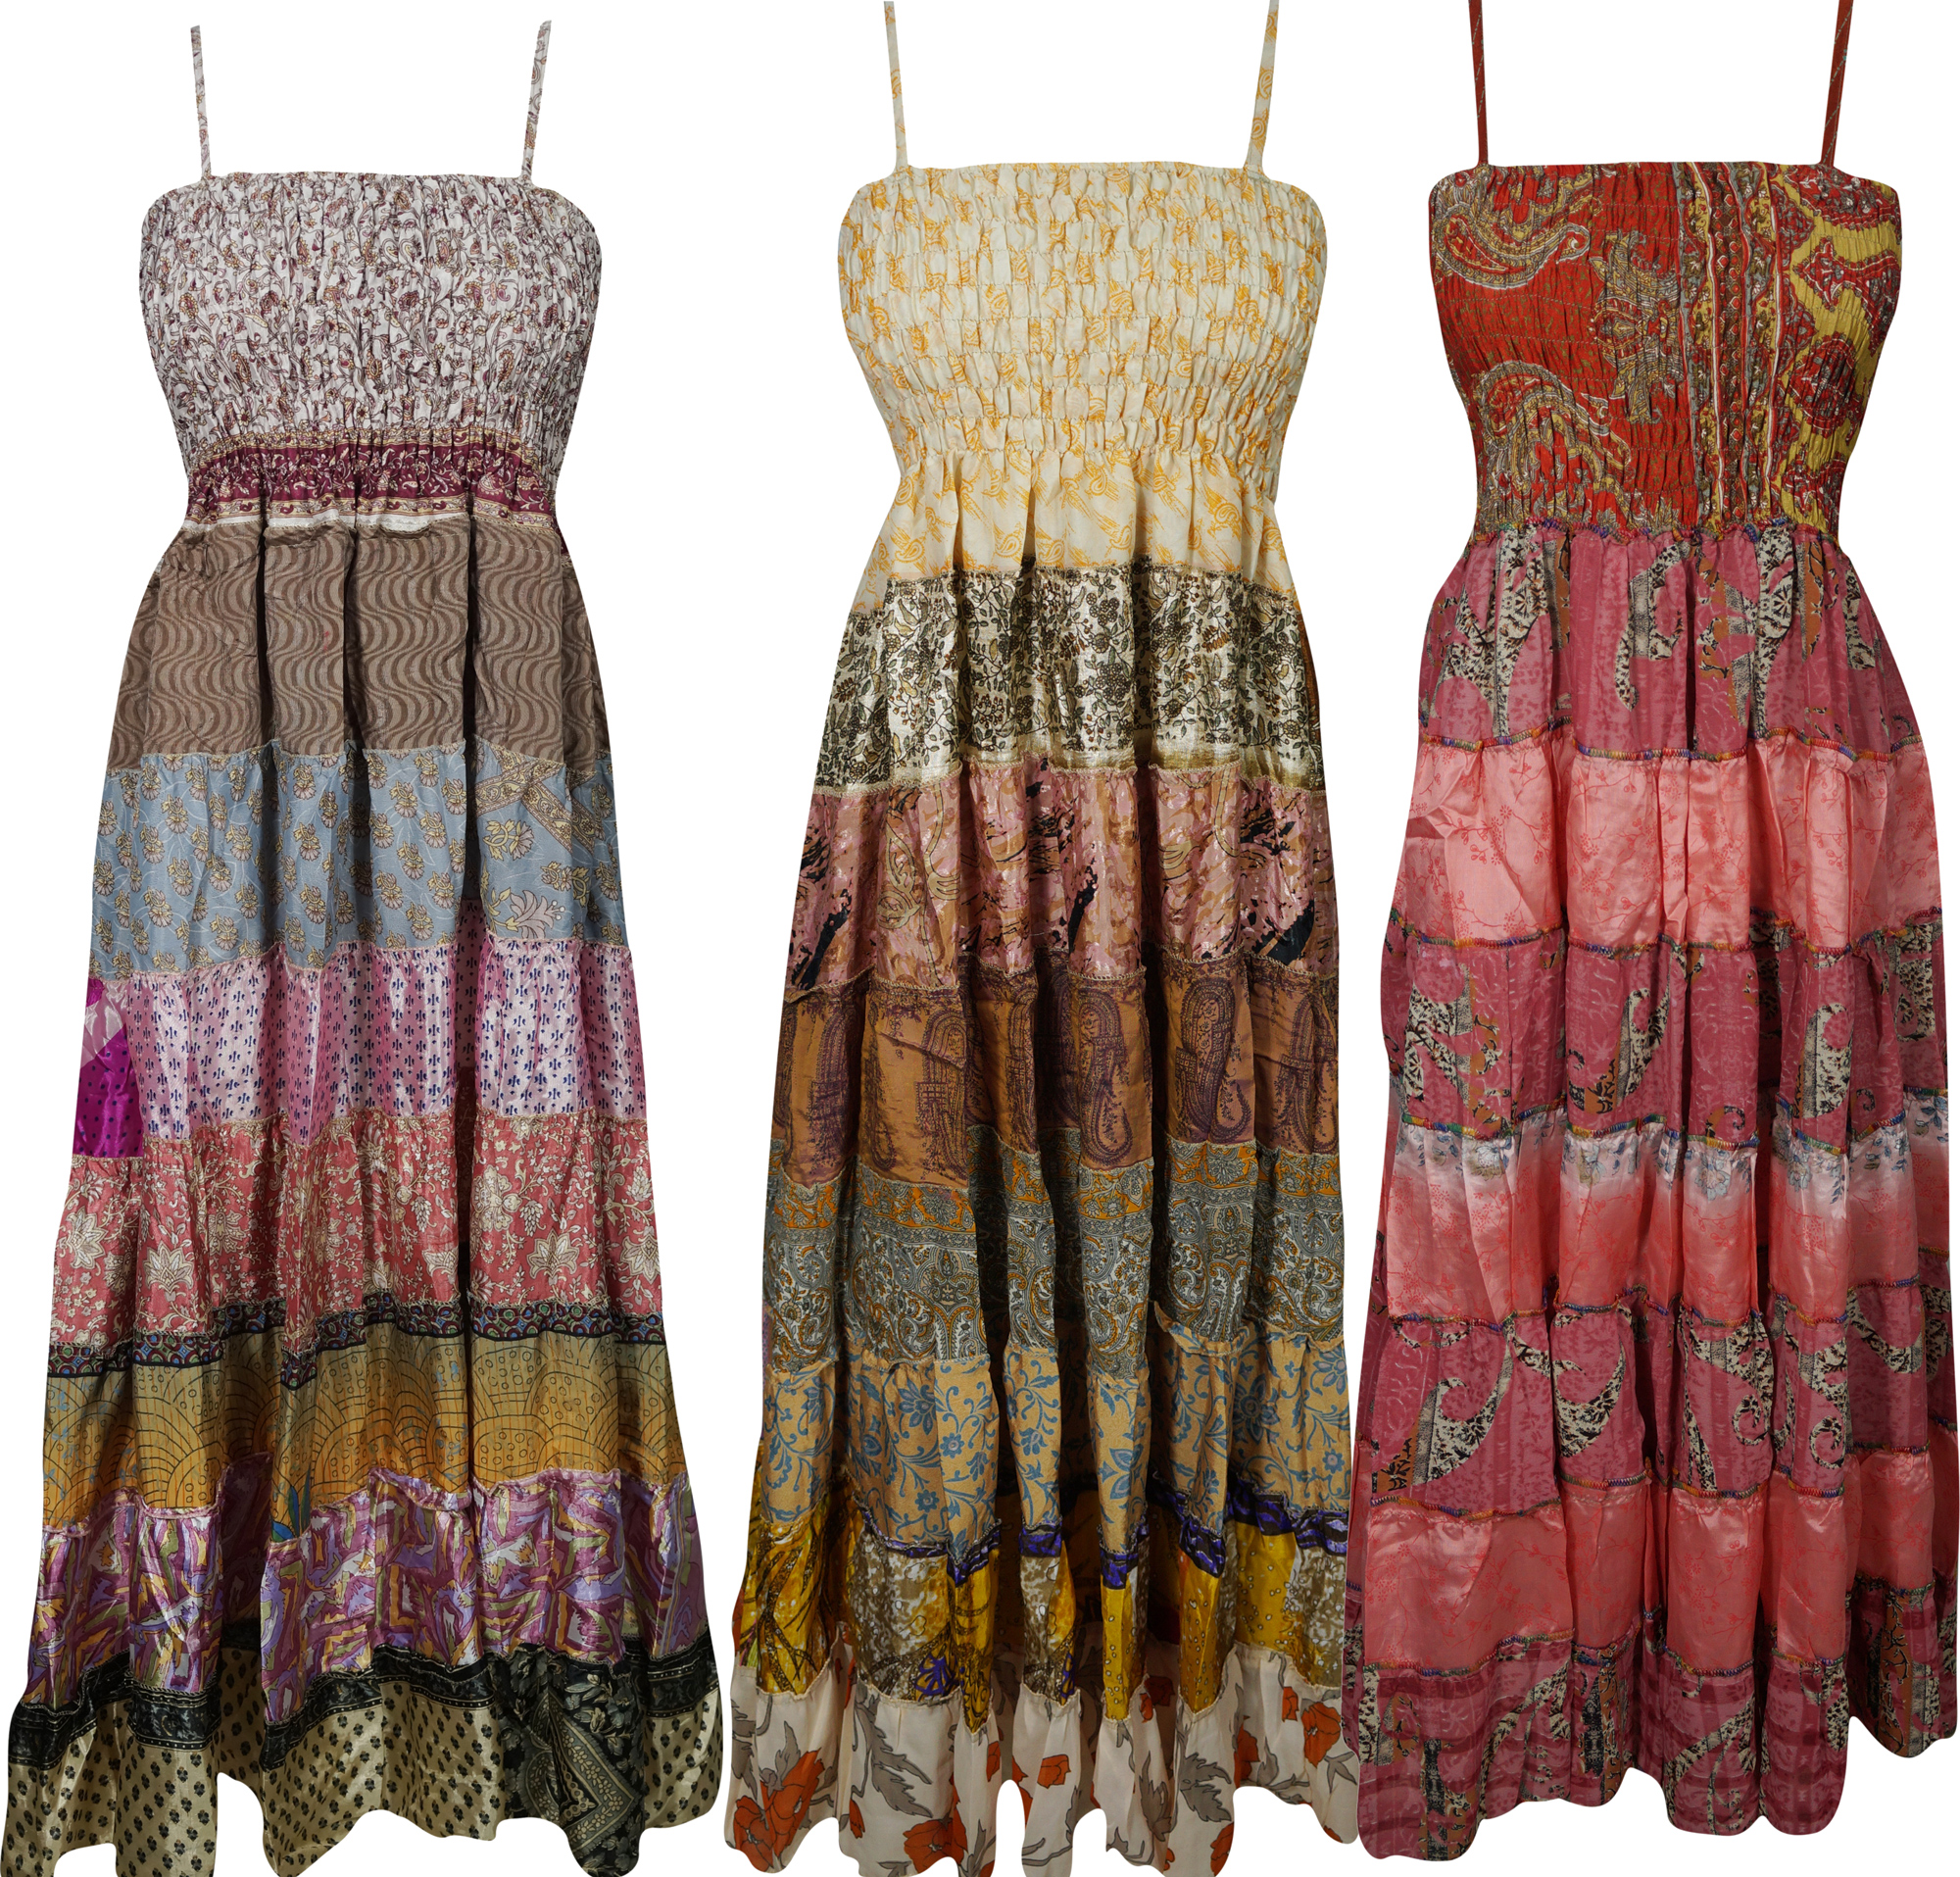 Mogul Womens Wholesale Lot Of 3 Pcs Maxi Dress Recycled Vintage Sari Patchwork Printed Strappy Holiday Sundress